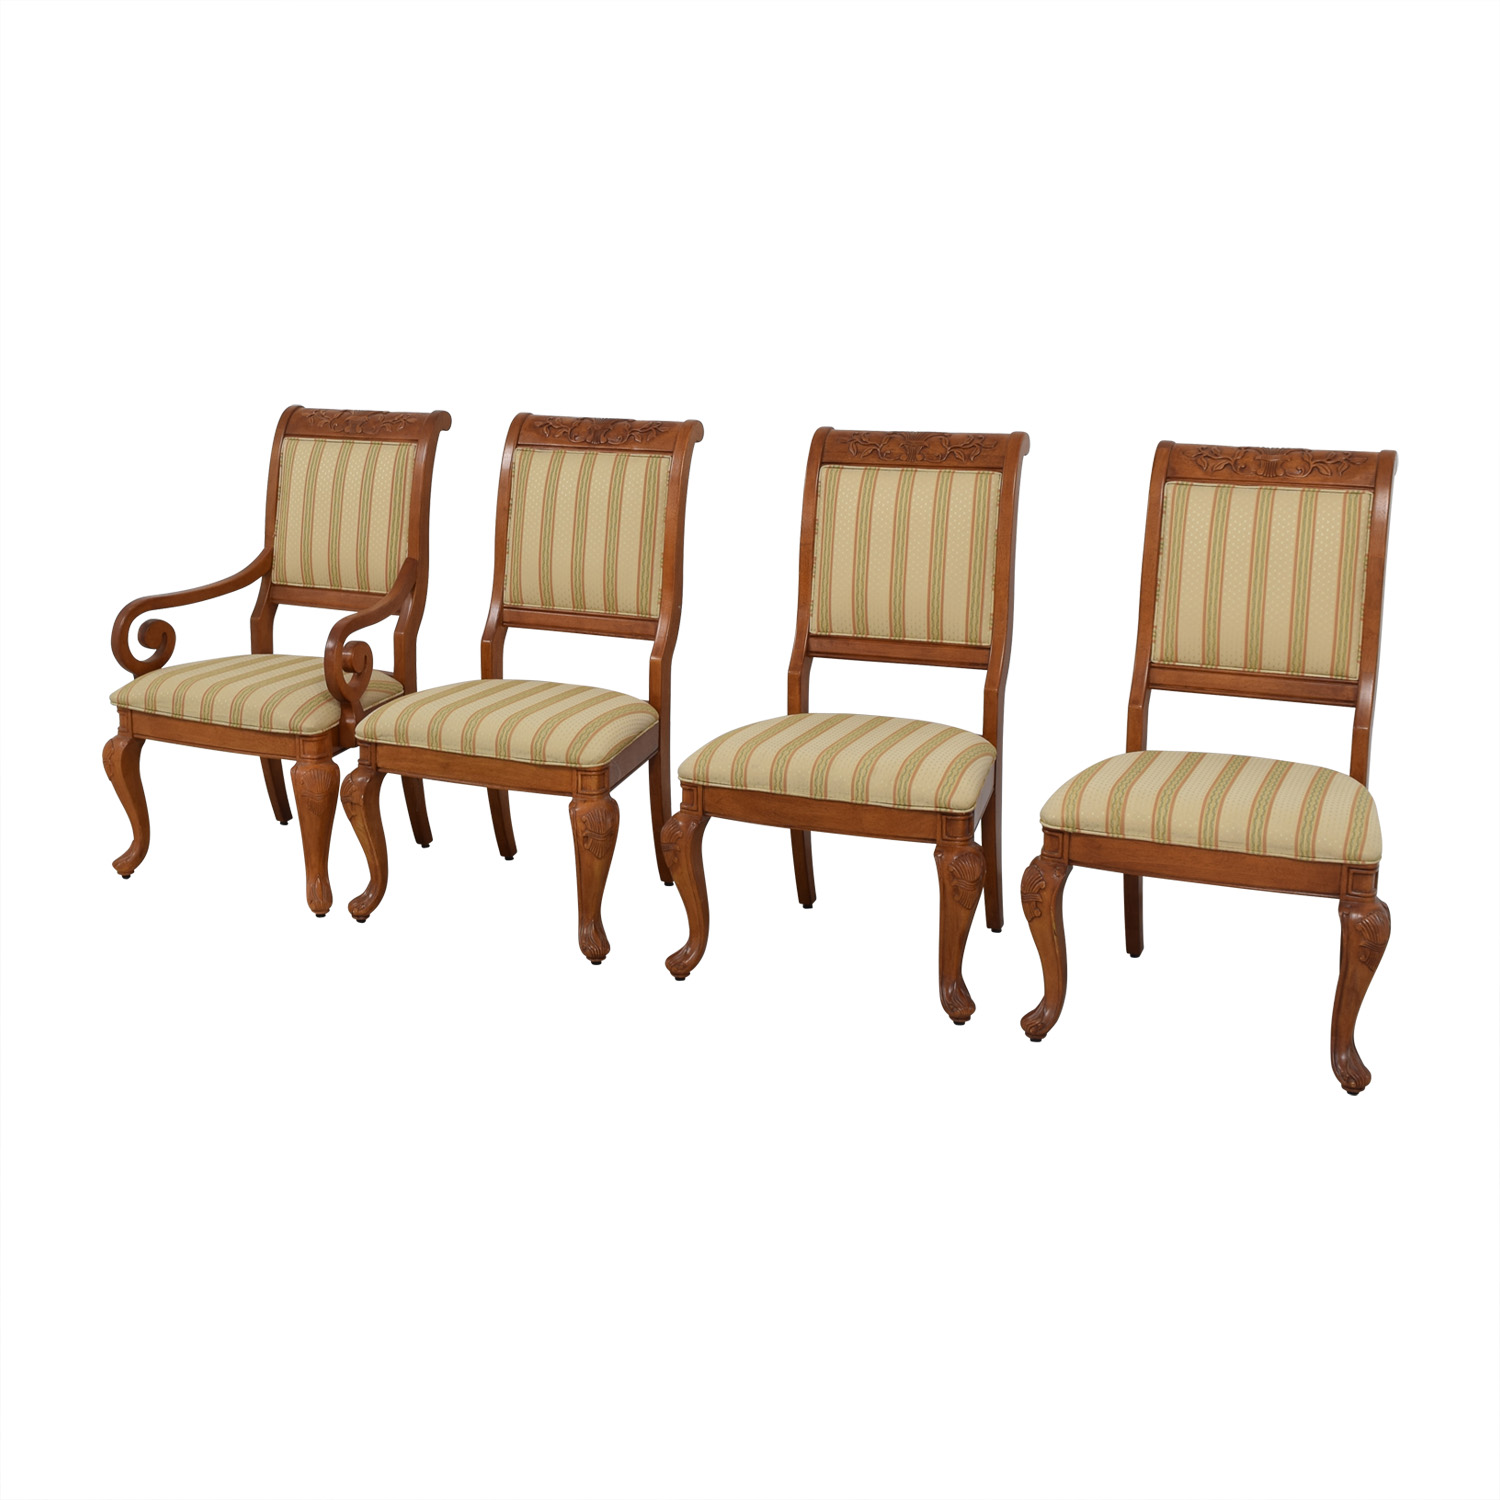 Furniture Masters Furniture Masters Striped Upholstered Carved Dining Chairs coupon